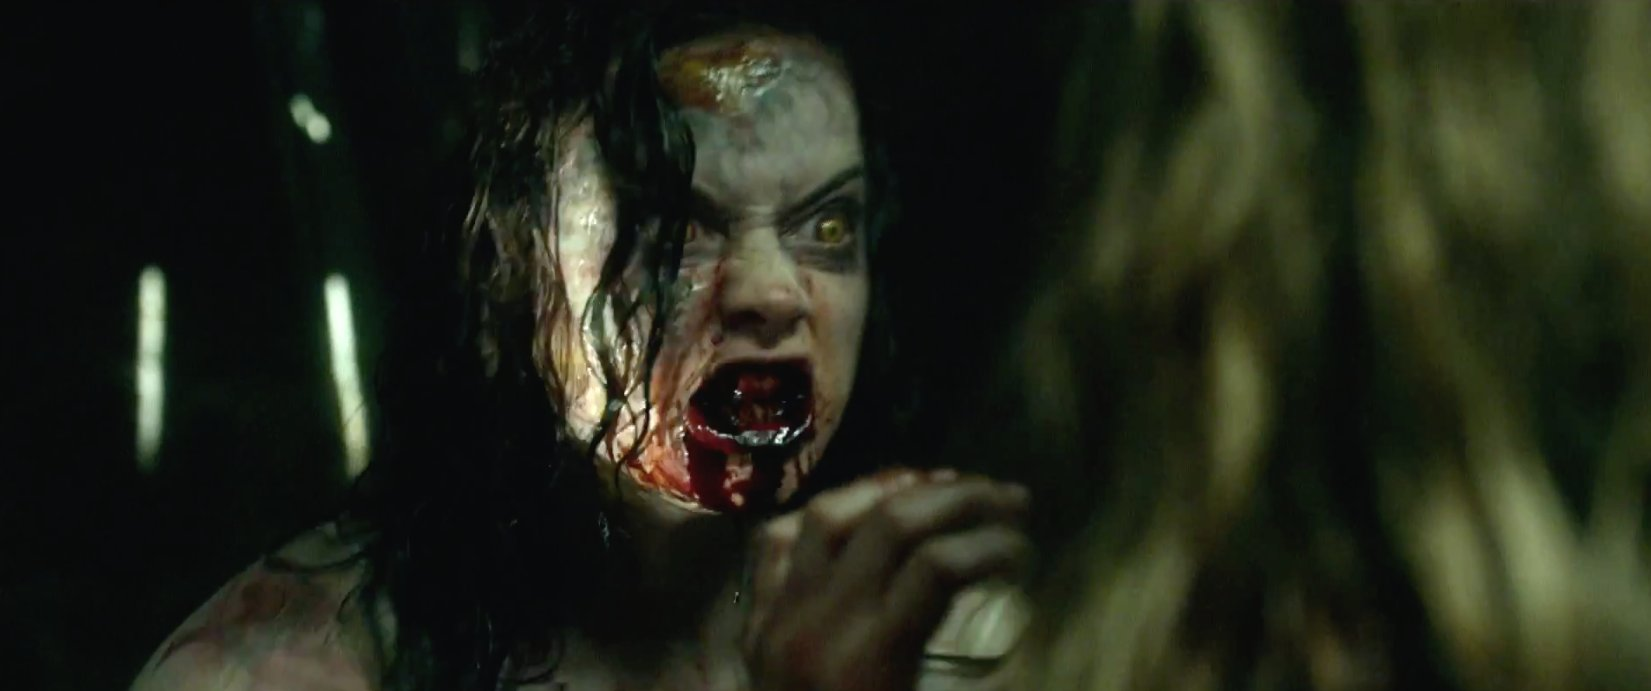 zevildead-caption